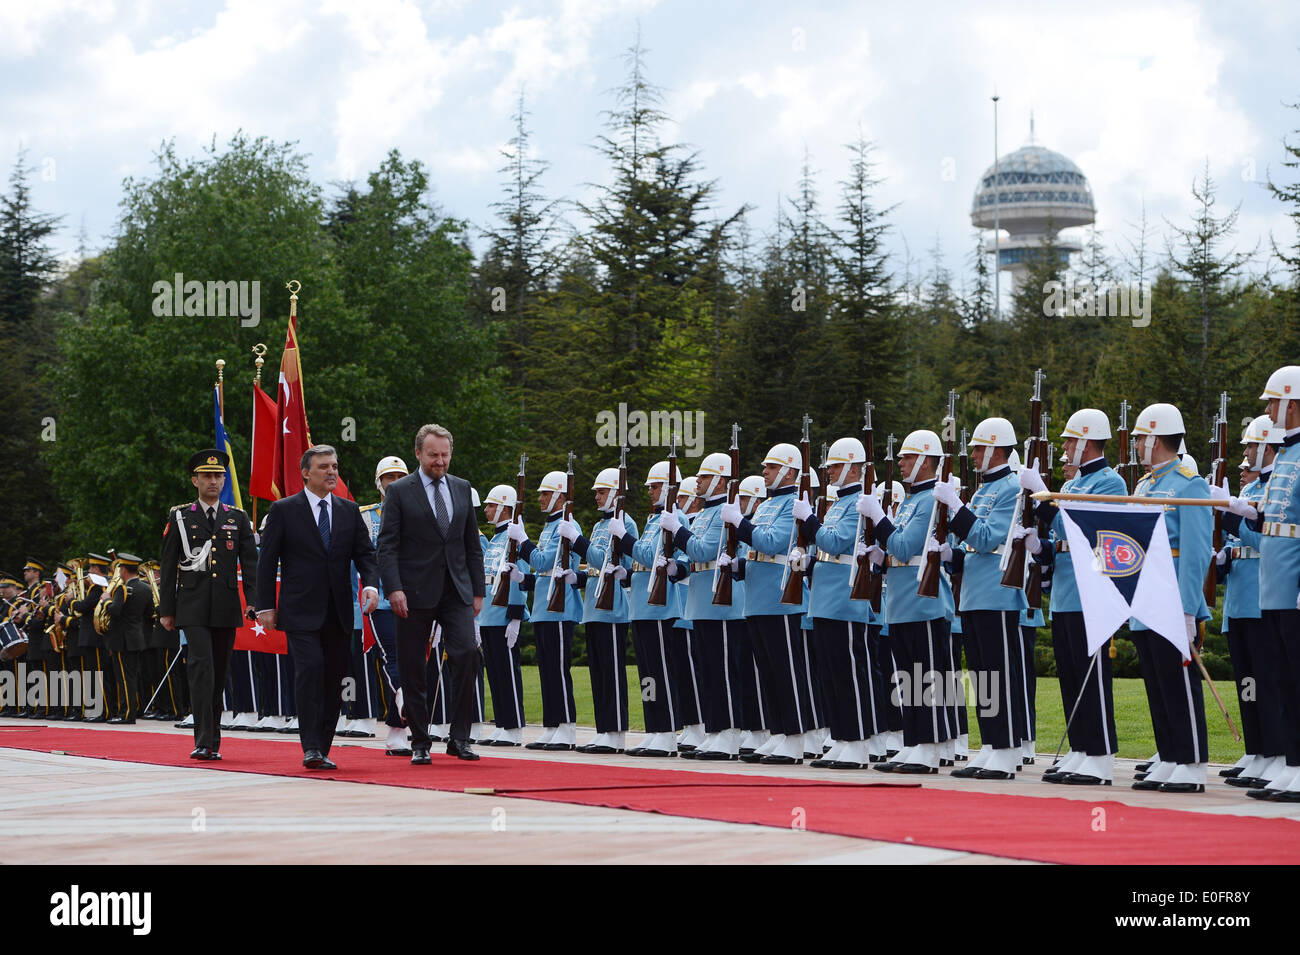 (140512) -- ANKARA, MAY 12, 2014 (Xinhua)-- Turkish Presidnet Abdullah Gul (L) welcomes the visiting President of the Presidium of Bosnia-Herzegovina Bakir Izetbegovic at a ceremony in Ankara, Turkey, May 12, 2014. (Xinhua/Turkish Presidential Palace) - Stock Image